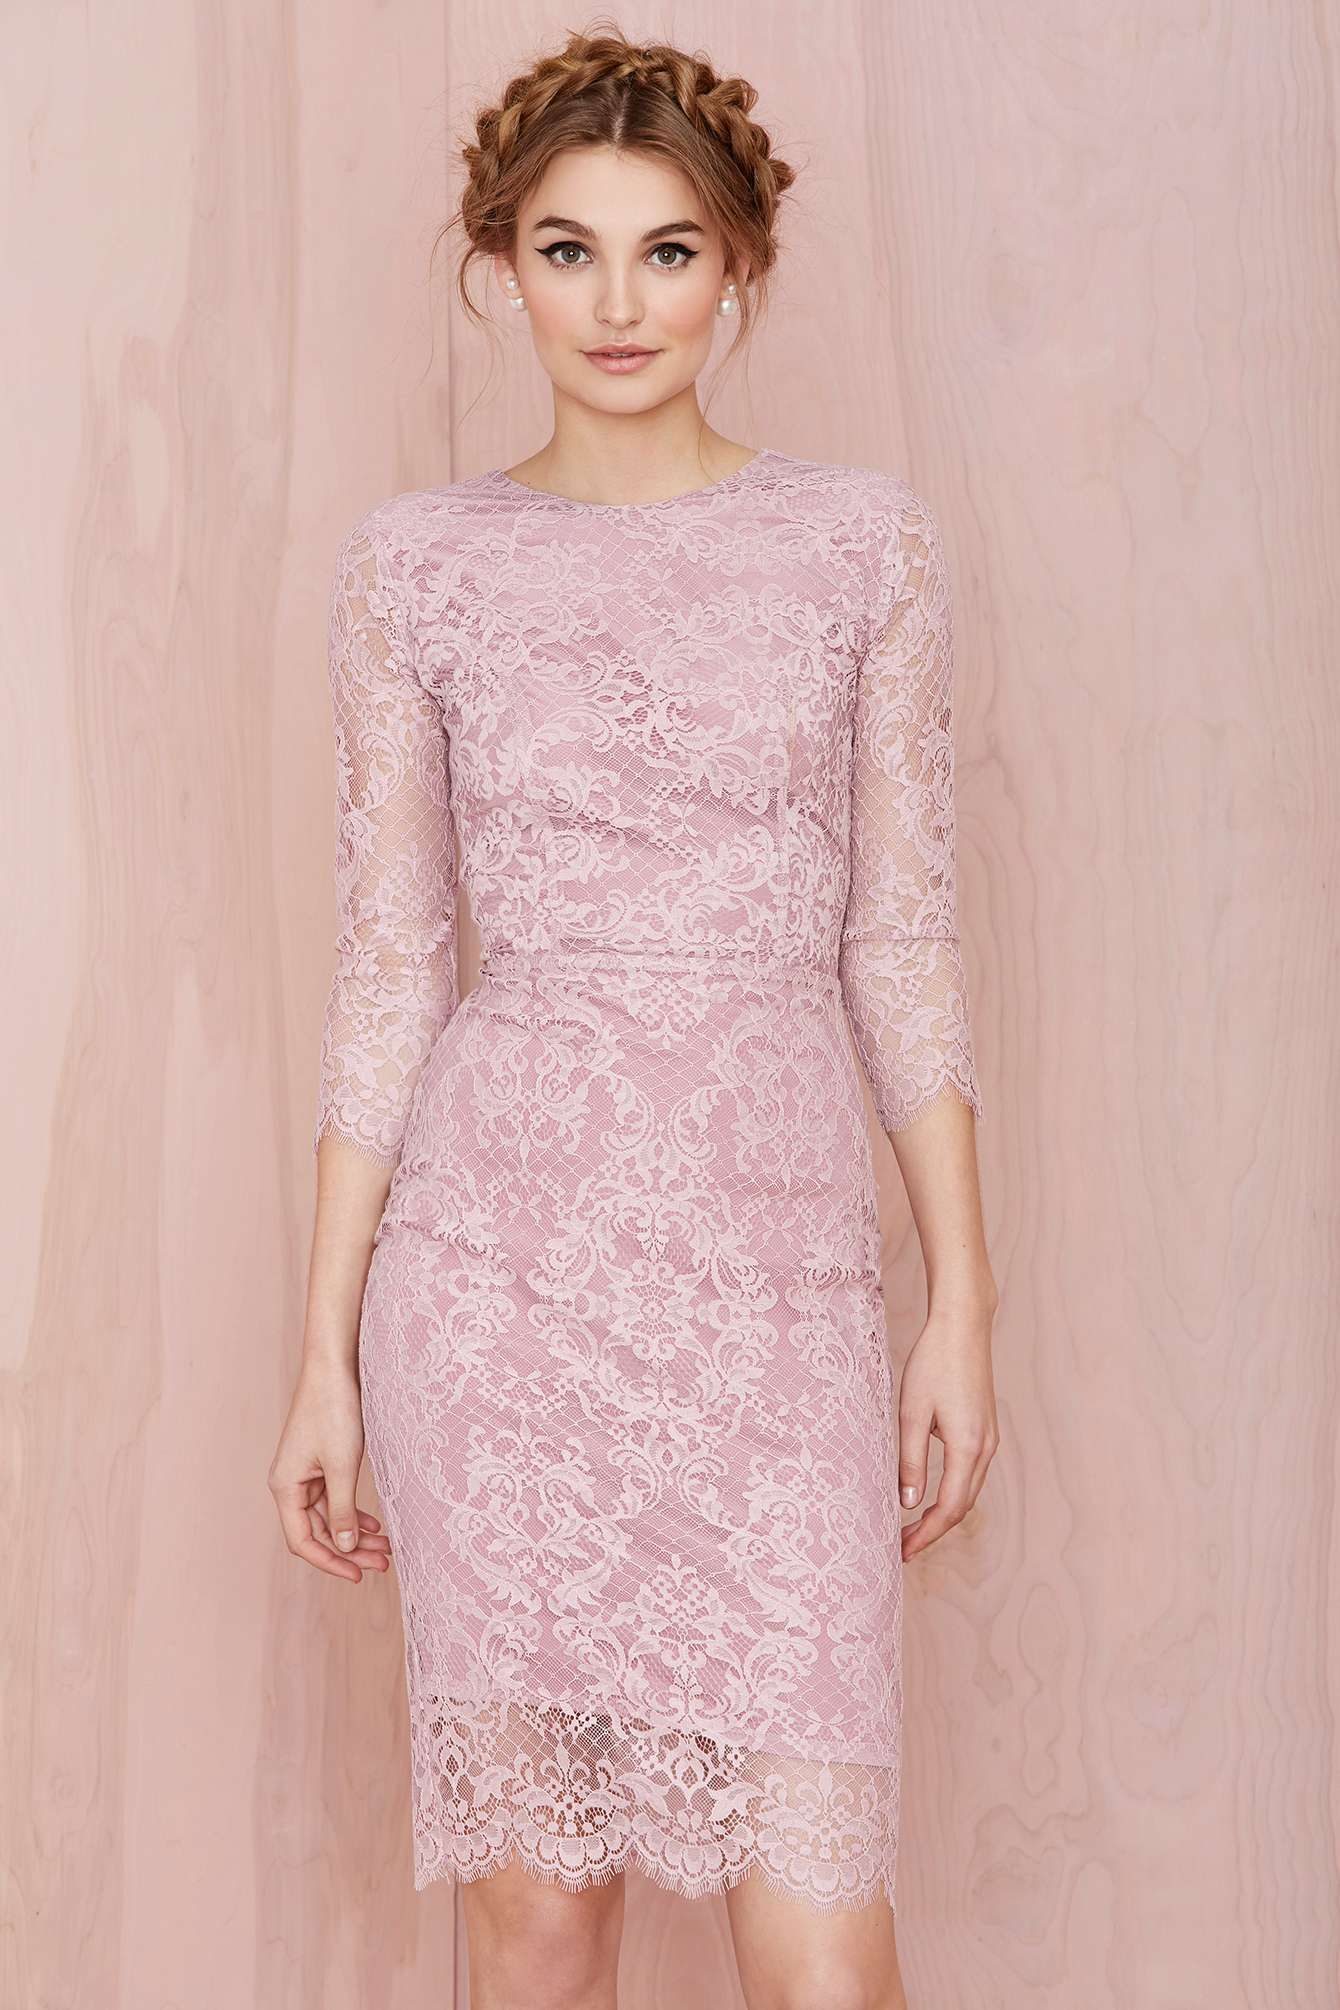 pink lace dress | For Love & Lemons | *Dresses & Skirts* | Pinterest ...